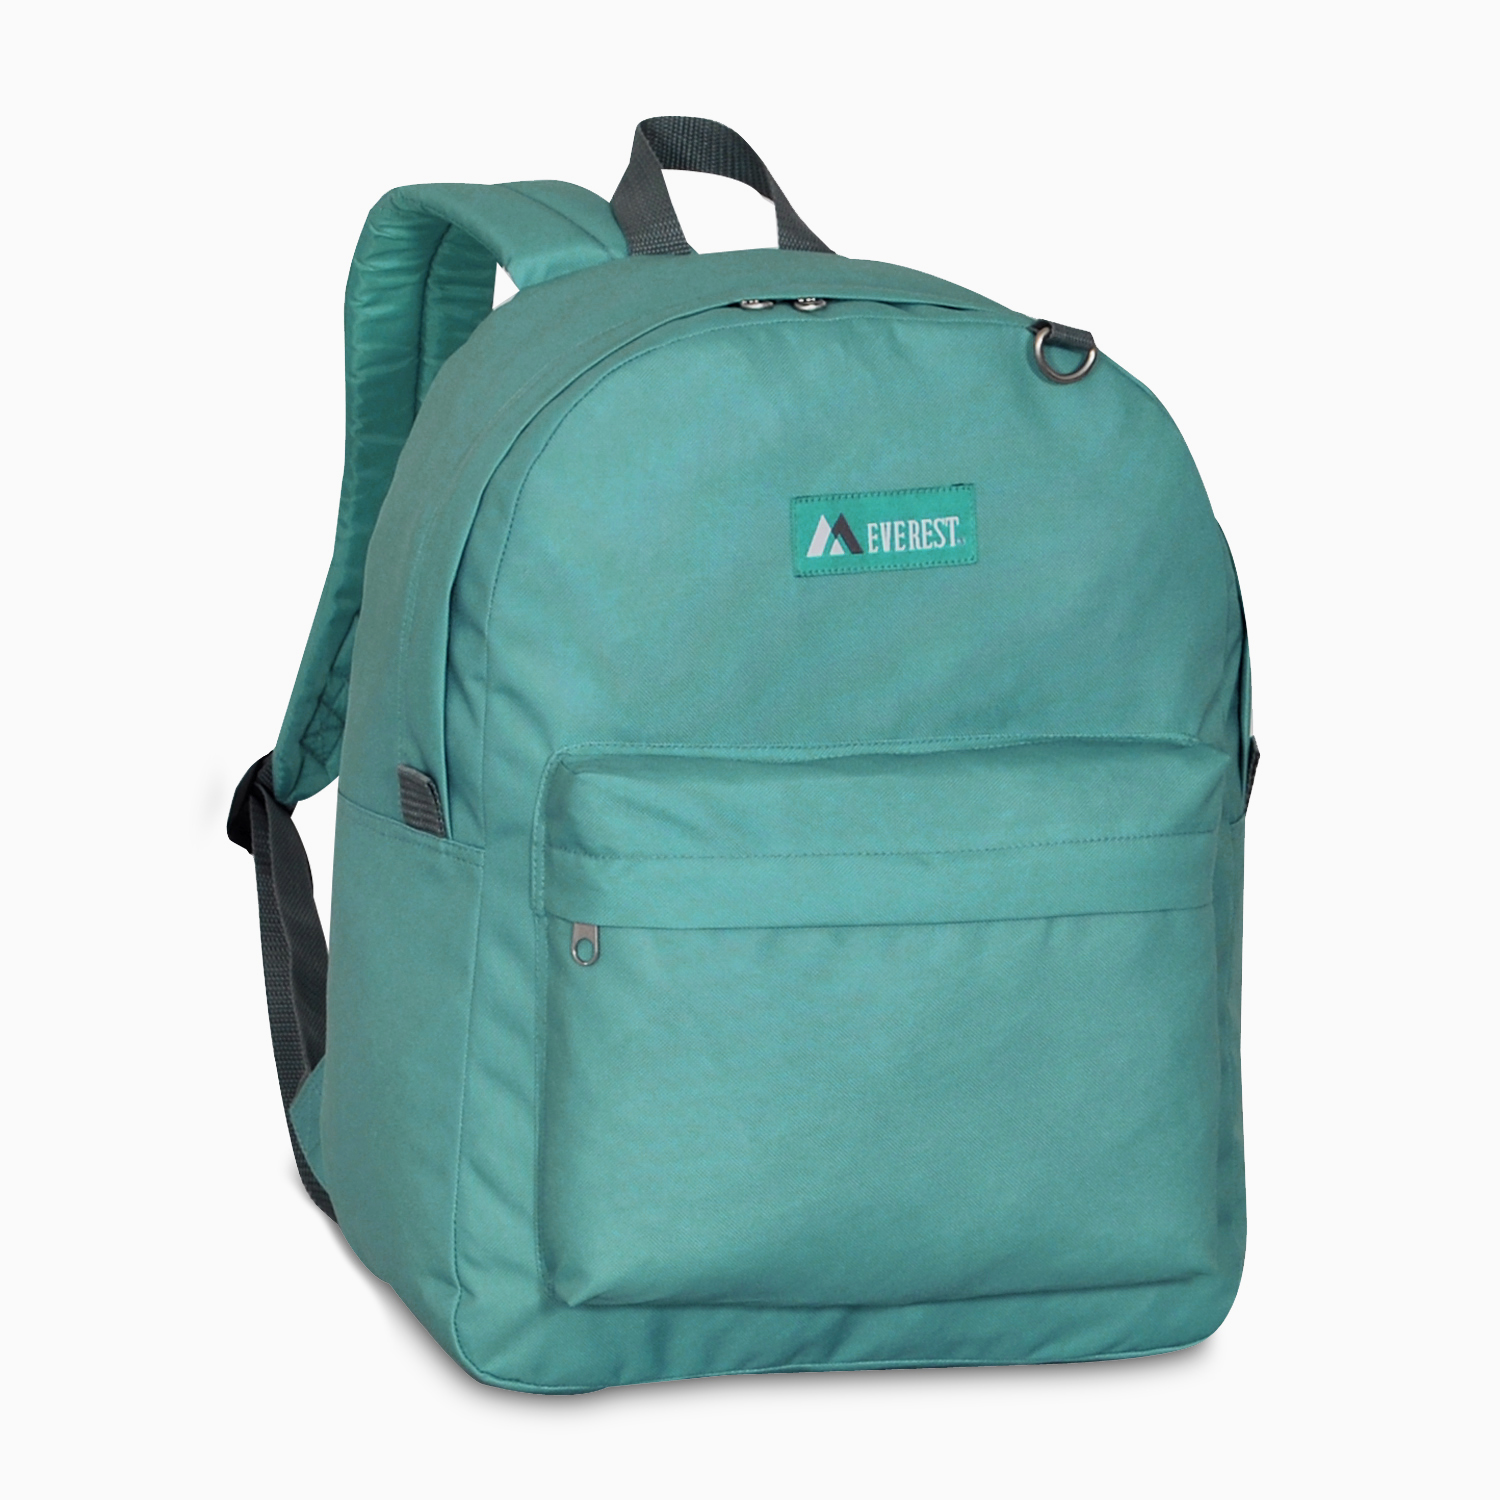 Everest Classic Backpack